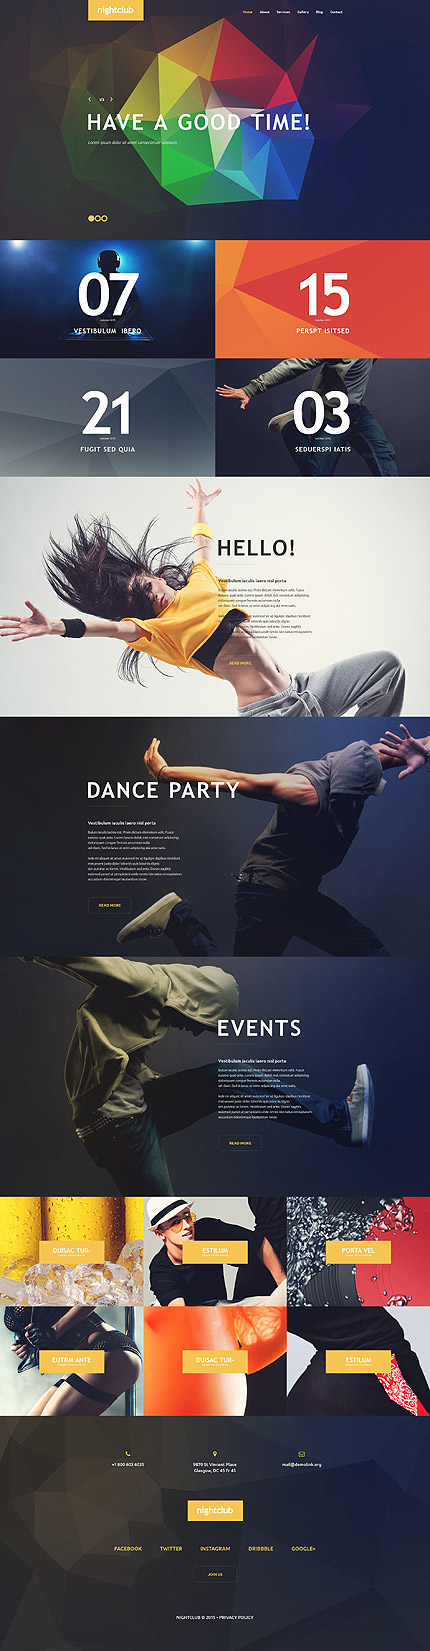 Geometric Shapes to Shape Your Creativity in Website Design | Entheos